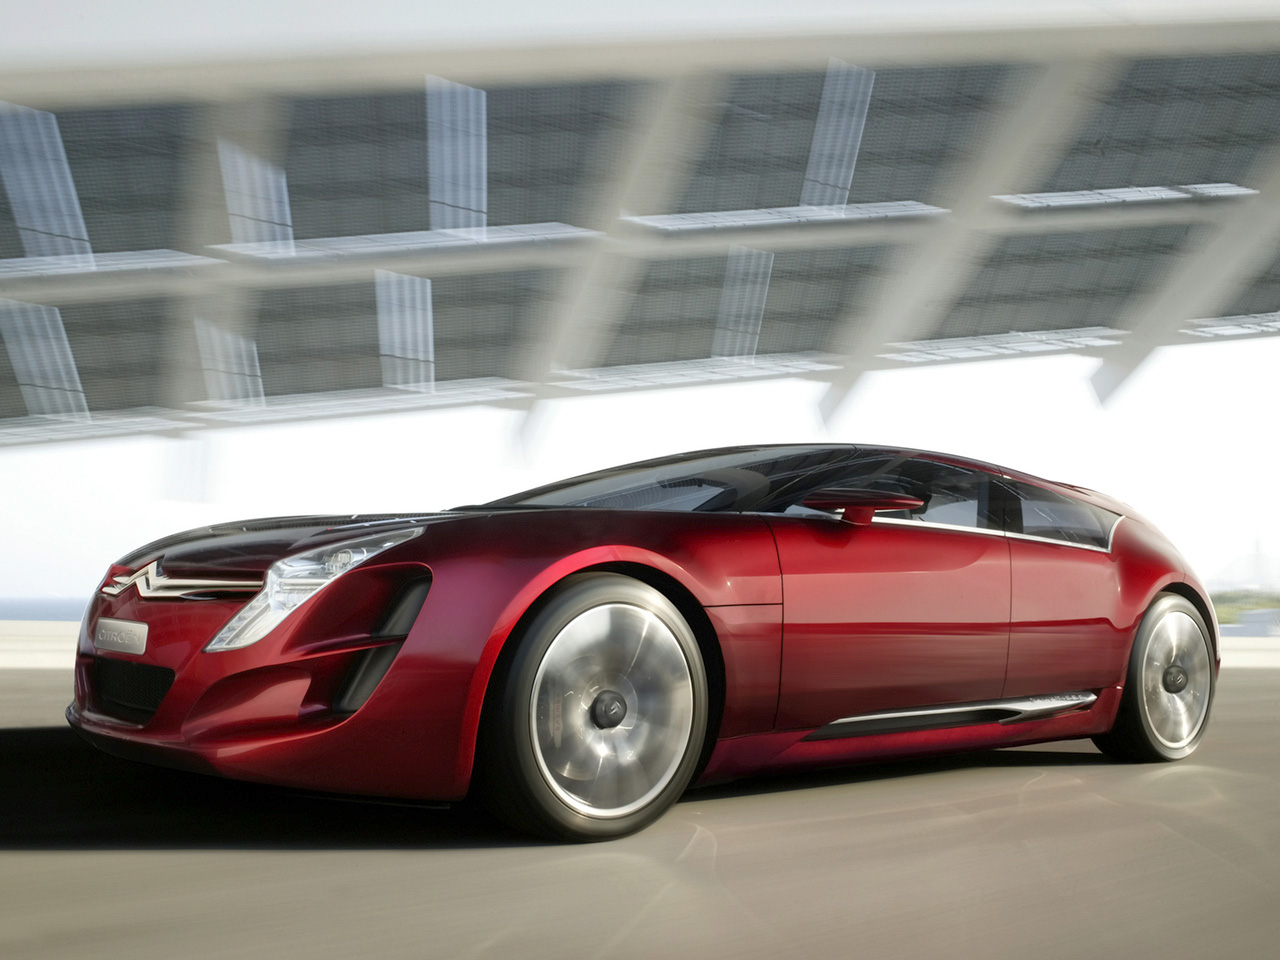 2006 Citroen C Metisse Concept Front And Free Download Image Of